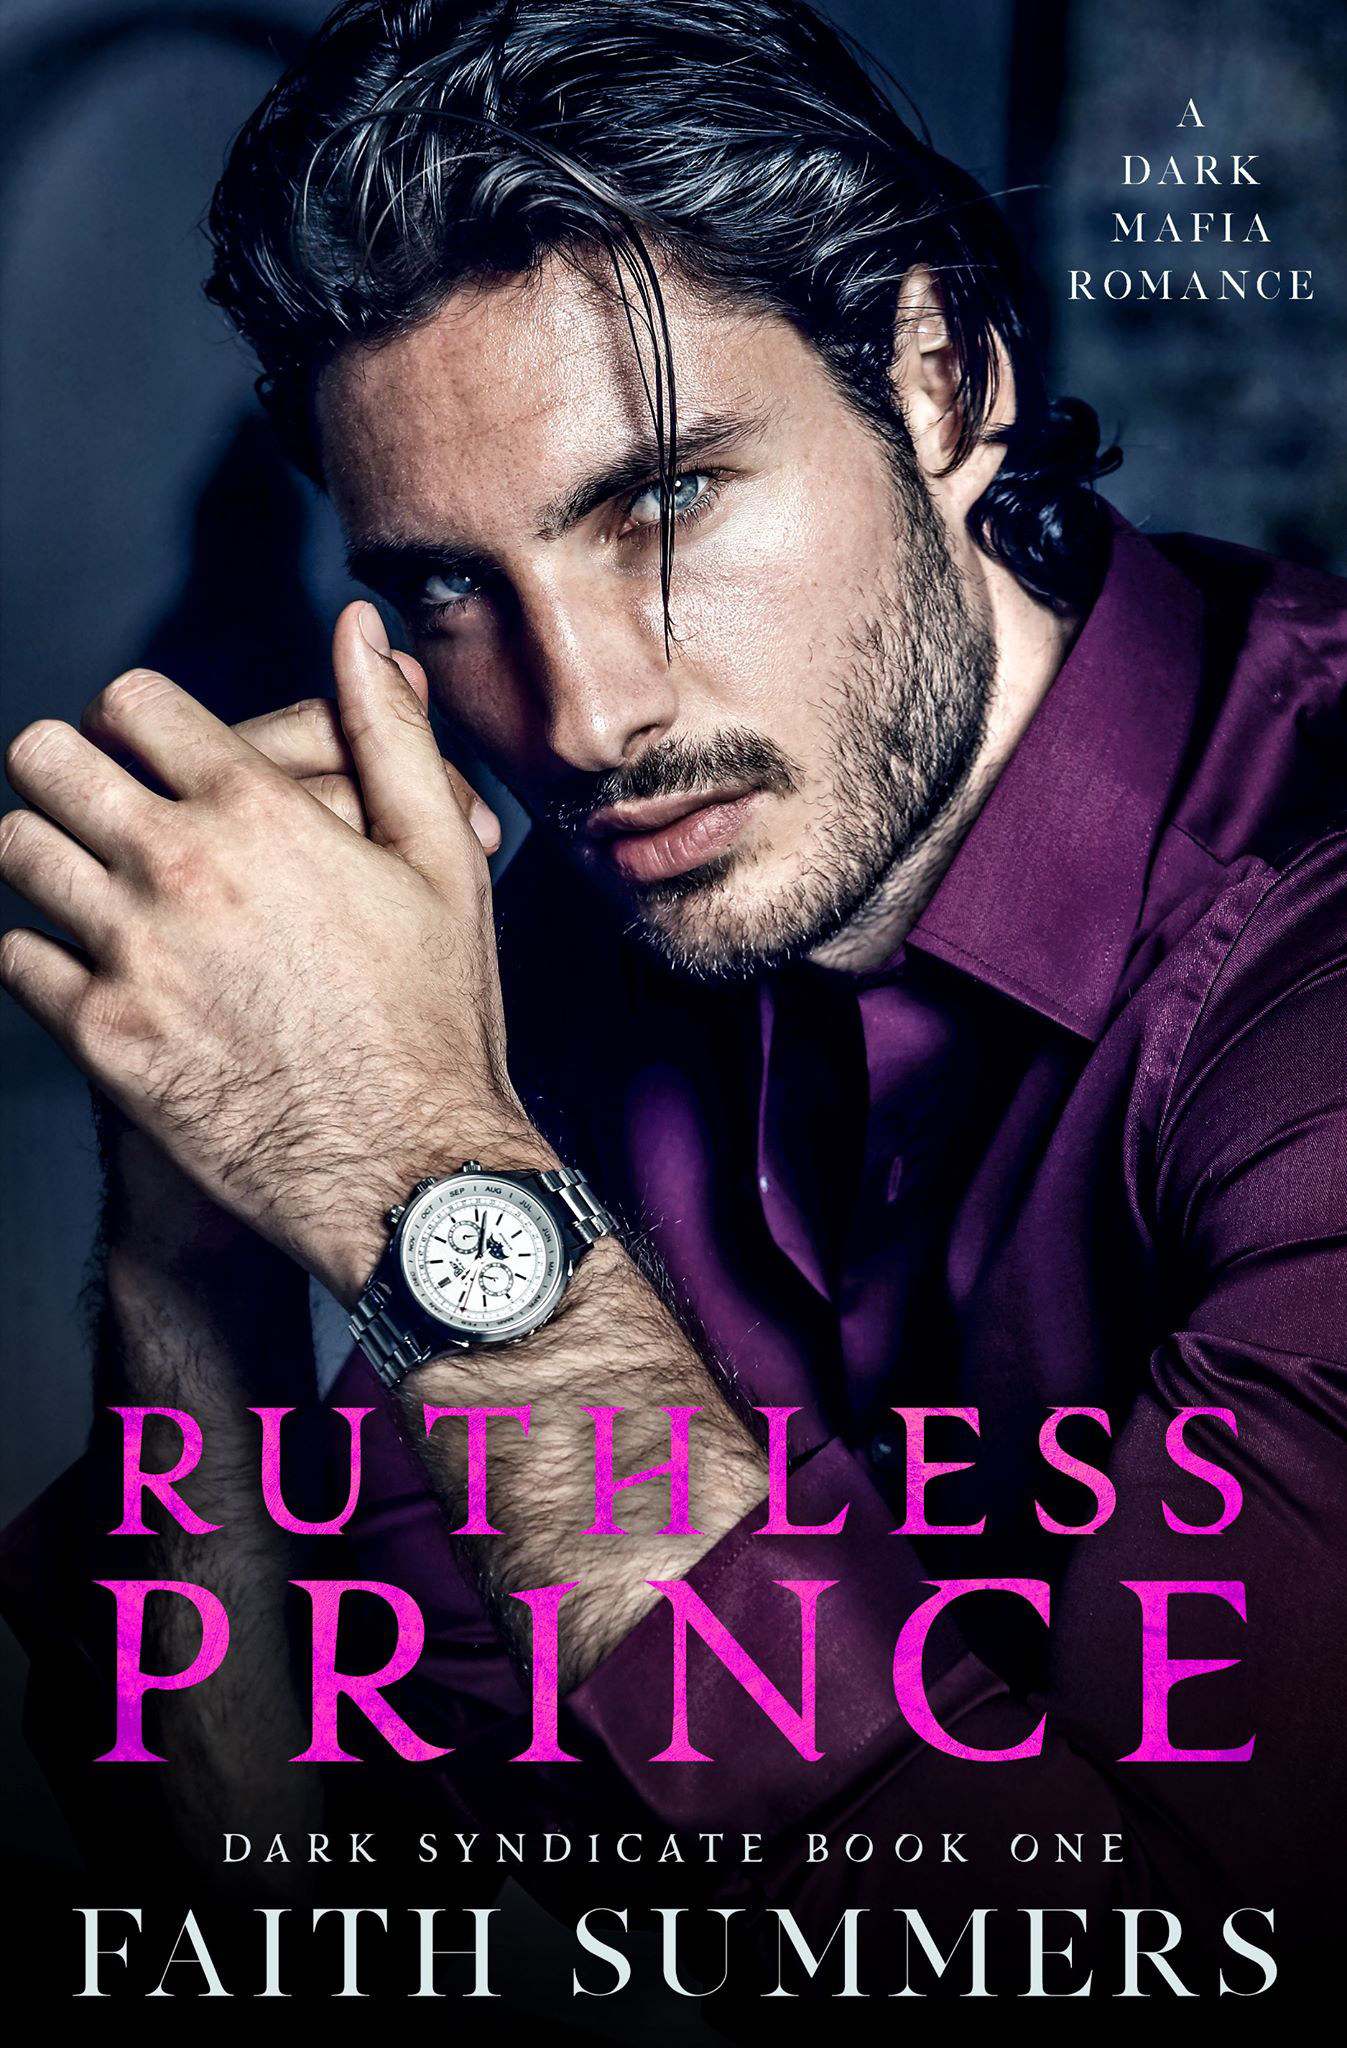 RUTHLESS PRINCE